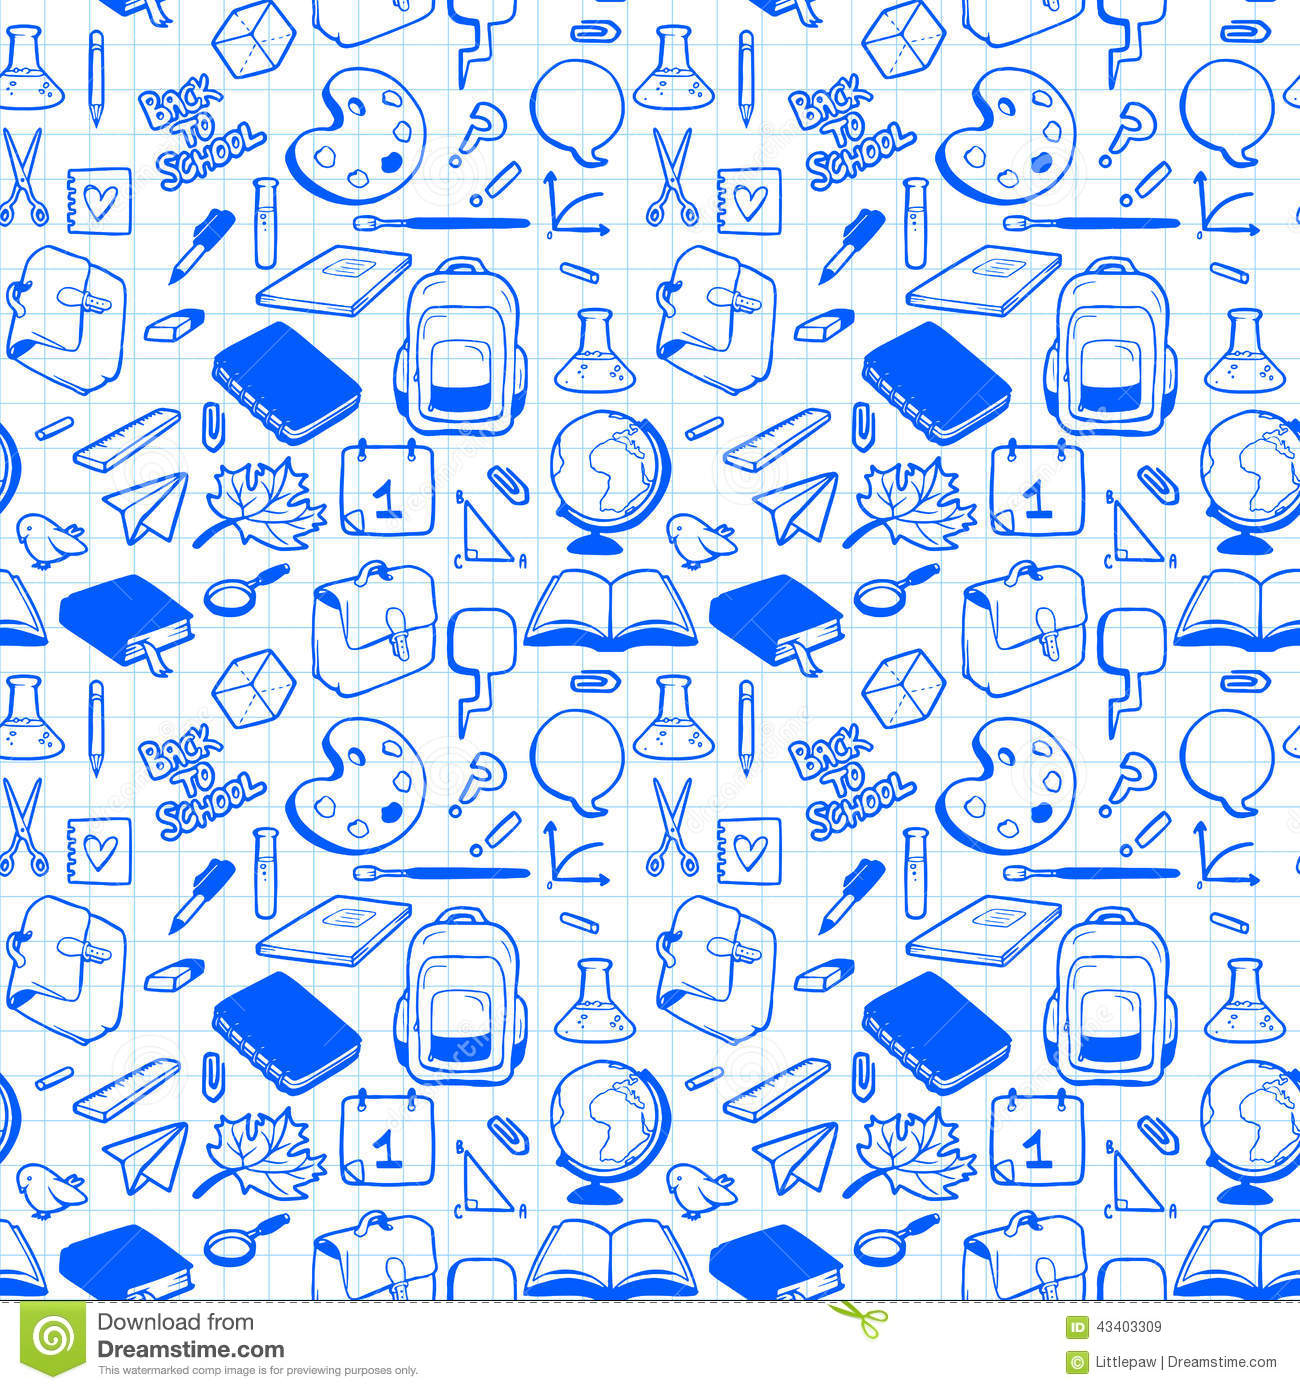 Seamless pattern with various elements for school